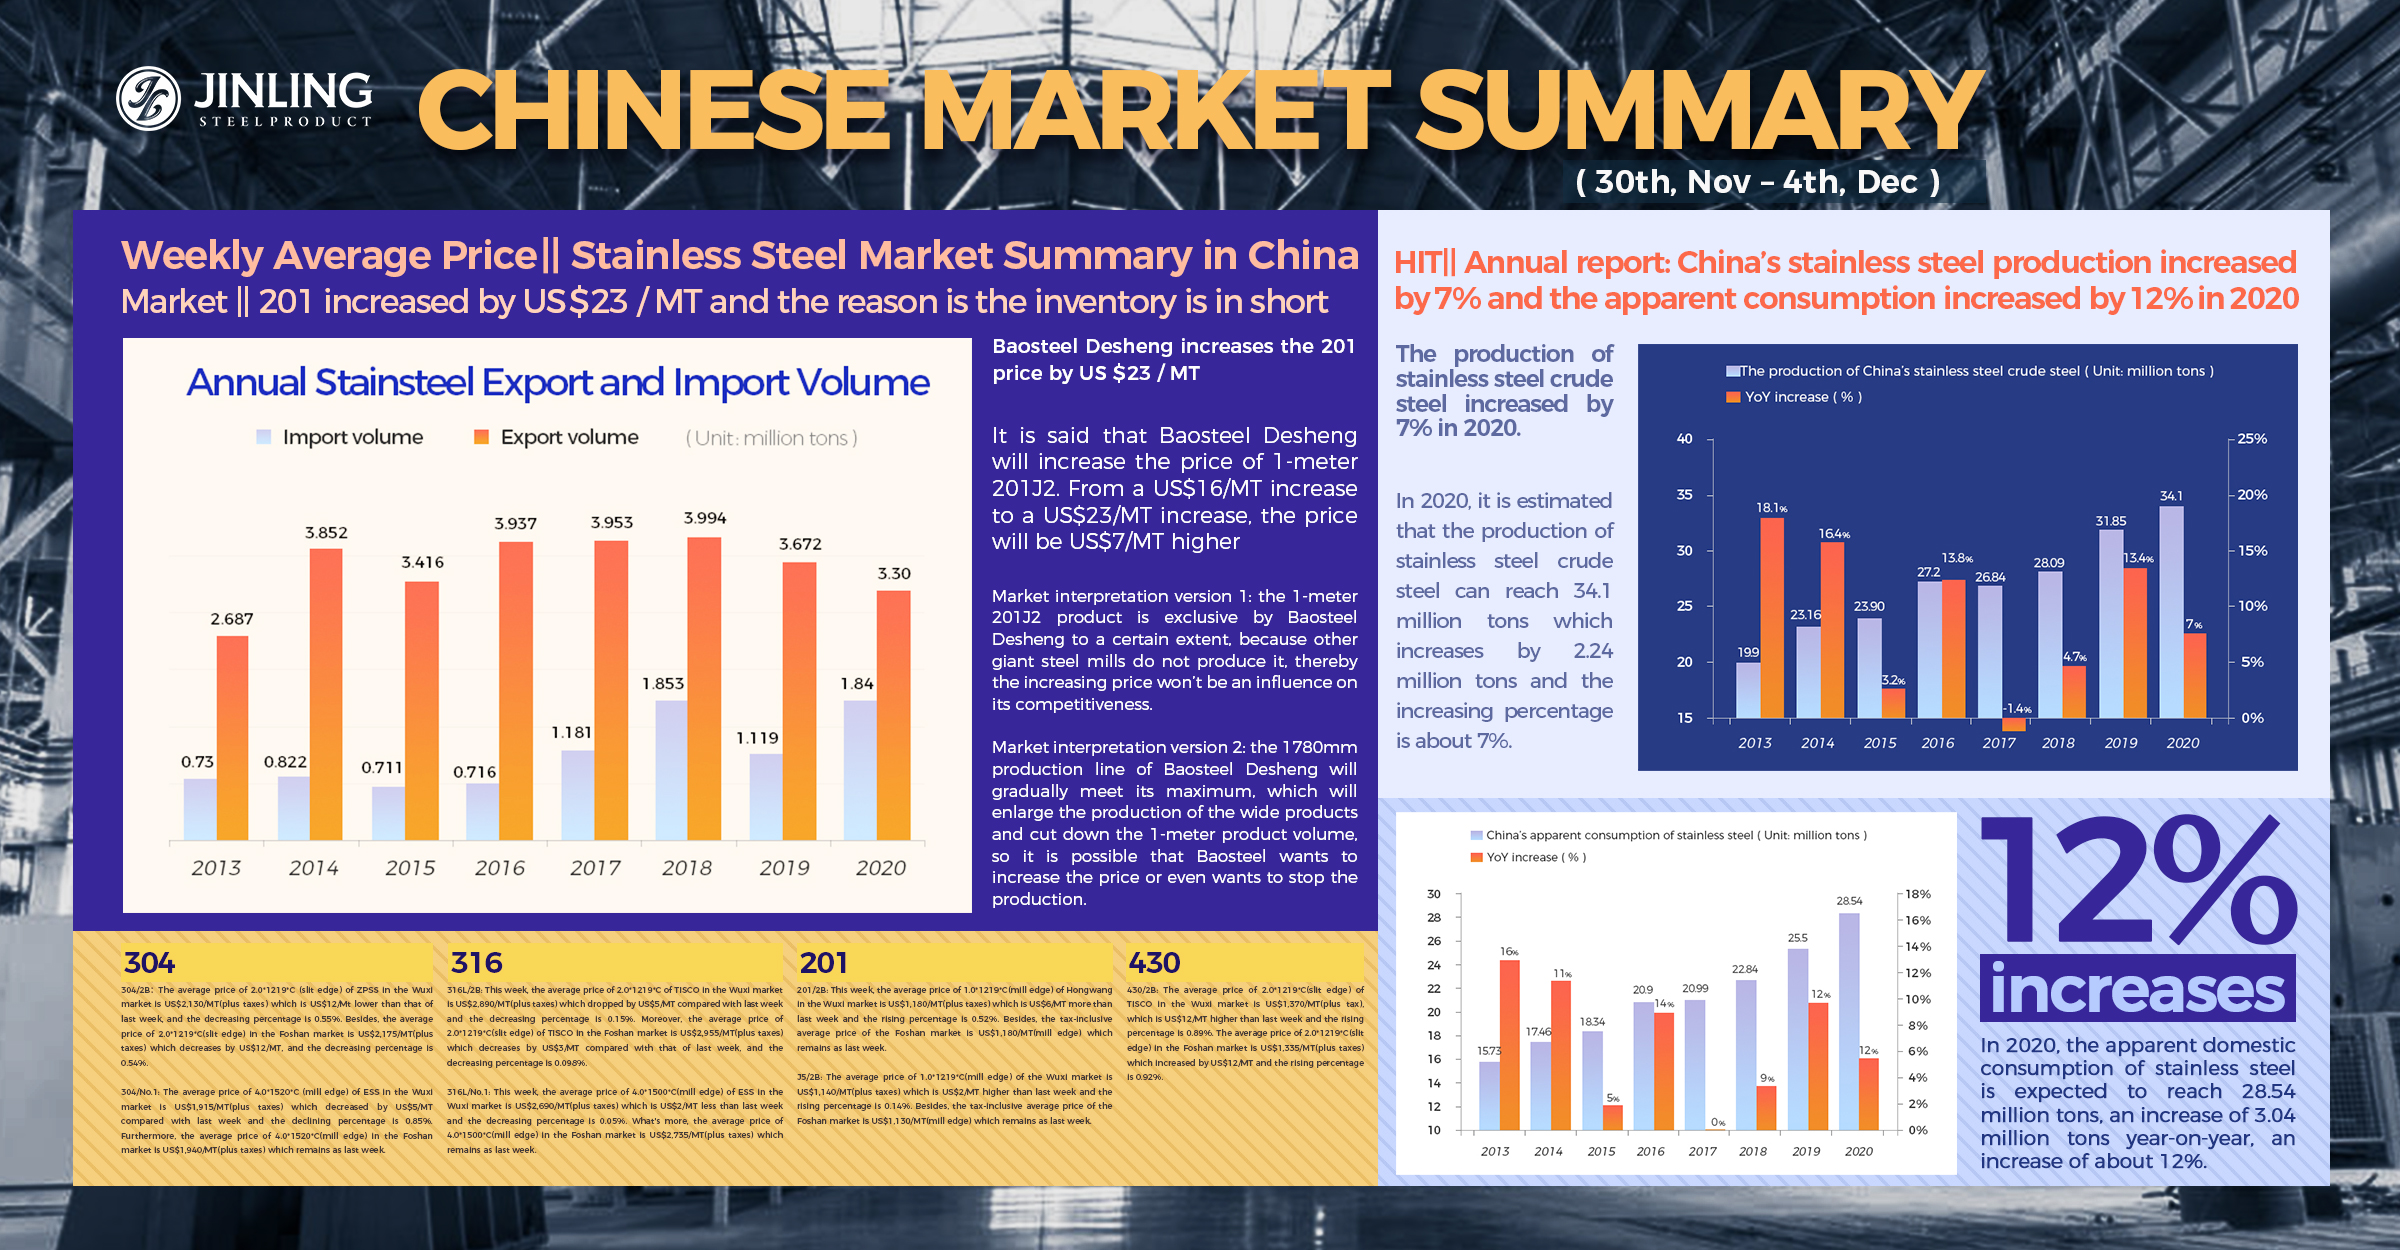 Weekly Average Price|| 201 Kept Increasing. 2020 Production Volume in China. Stainless Steel Market Summary in China(30th, Nov – 4th, Dec)